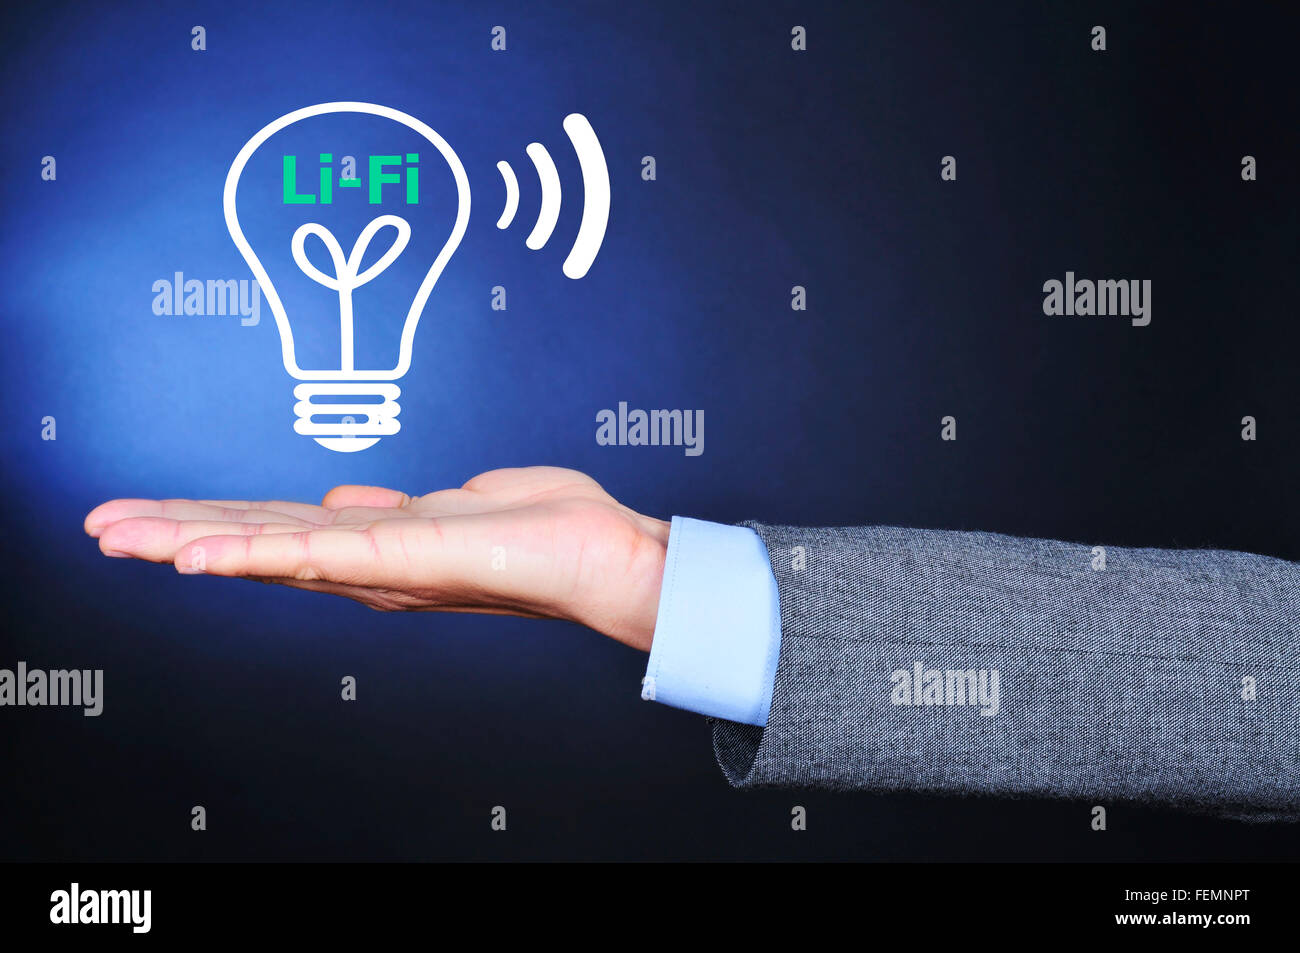 closeup of a man wearing a suit with an illustration of a lightbulb and the text Li-Fi, Light Fidelity, in the palm - Stock Image